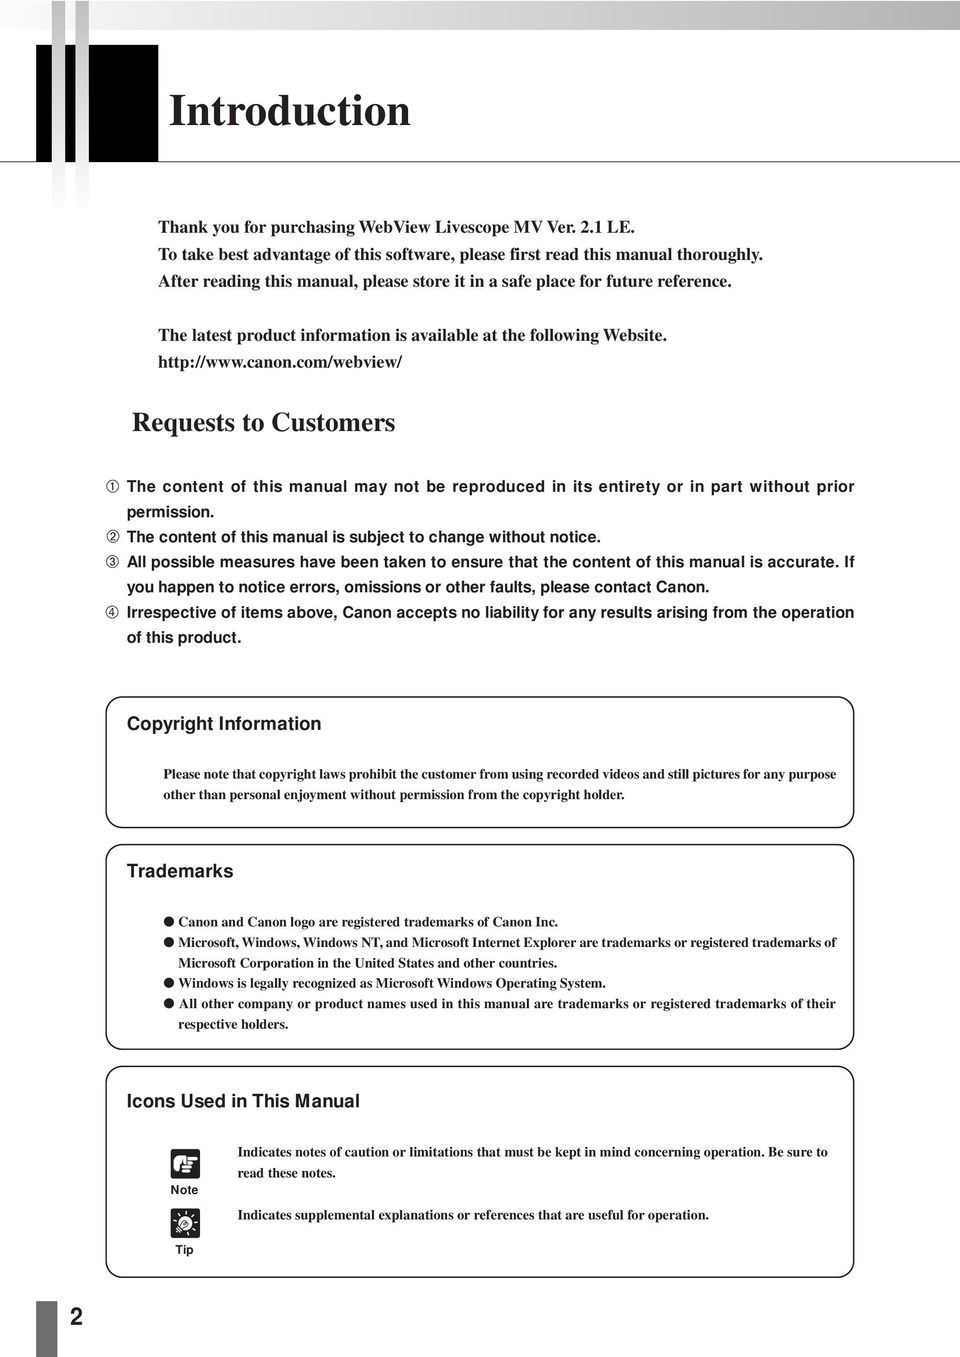 com/webview/ Requests to Customers The content of this manual may not be reproduced in its entirety or in part without prior permission. The content of this manual is subject to change without notice.